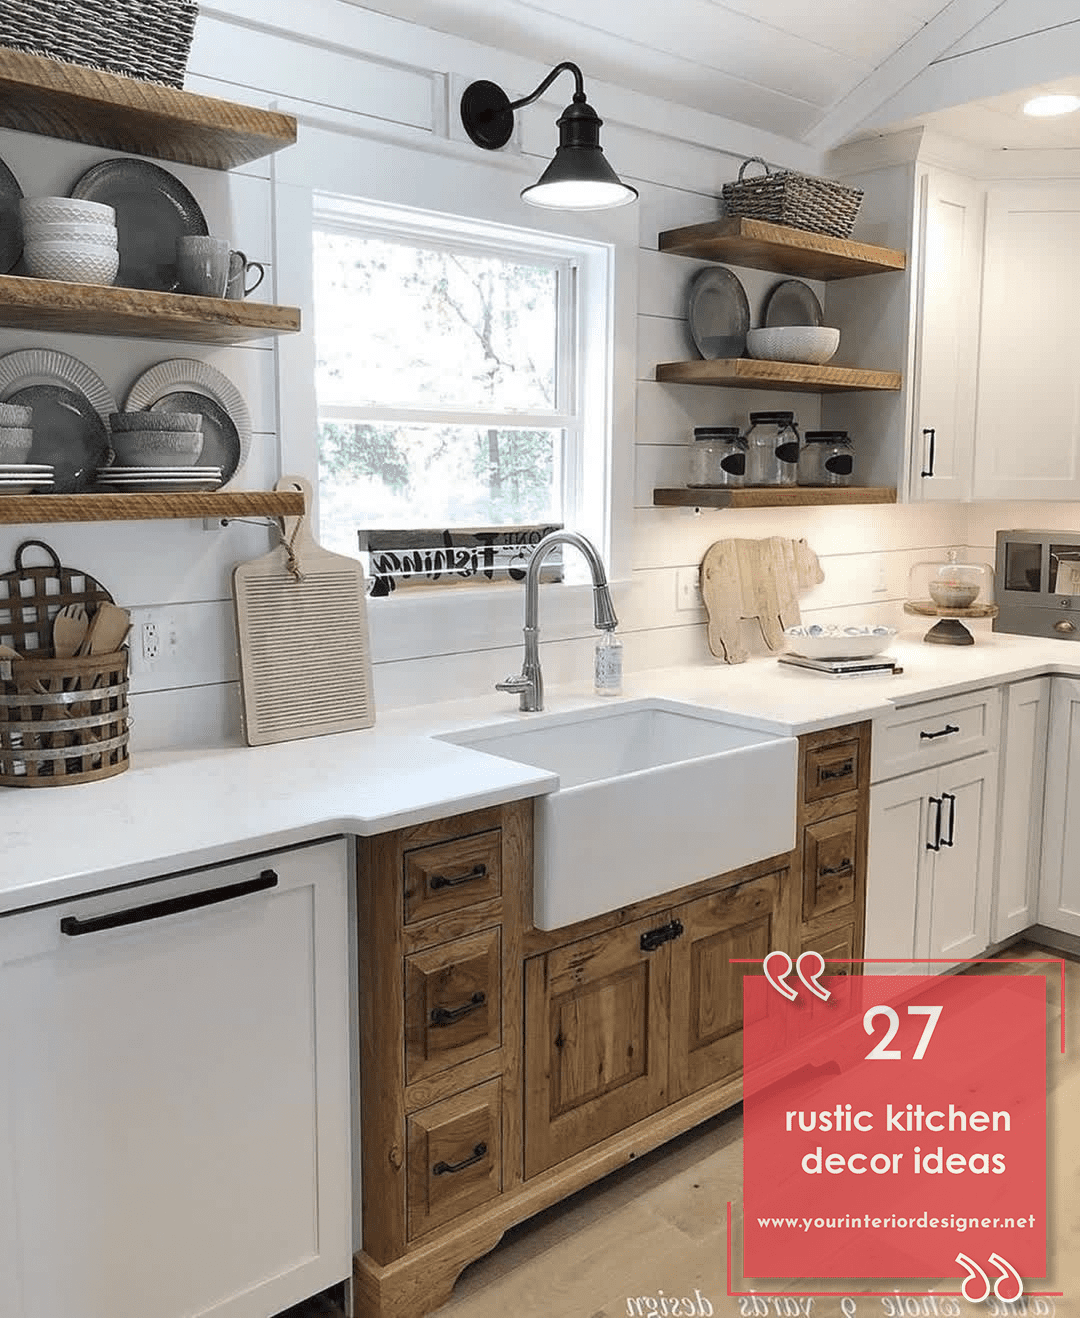 If You Are Interested In Kitchens In Rustic Style You Should Check This Out Our Gallery Whic In 2020 Farmhouse Kitchen Design Farmhouse Kitchen Decor Rustic Kitchen